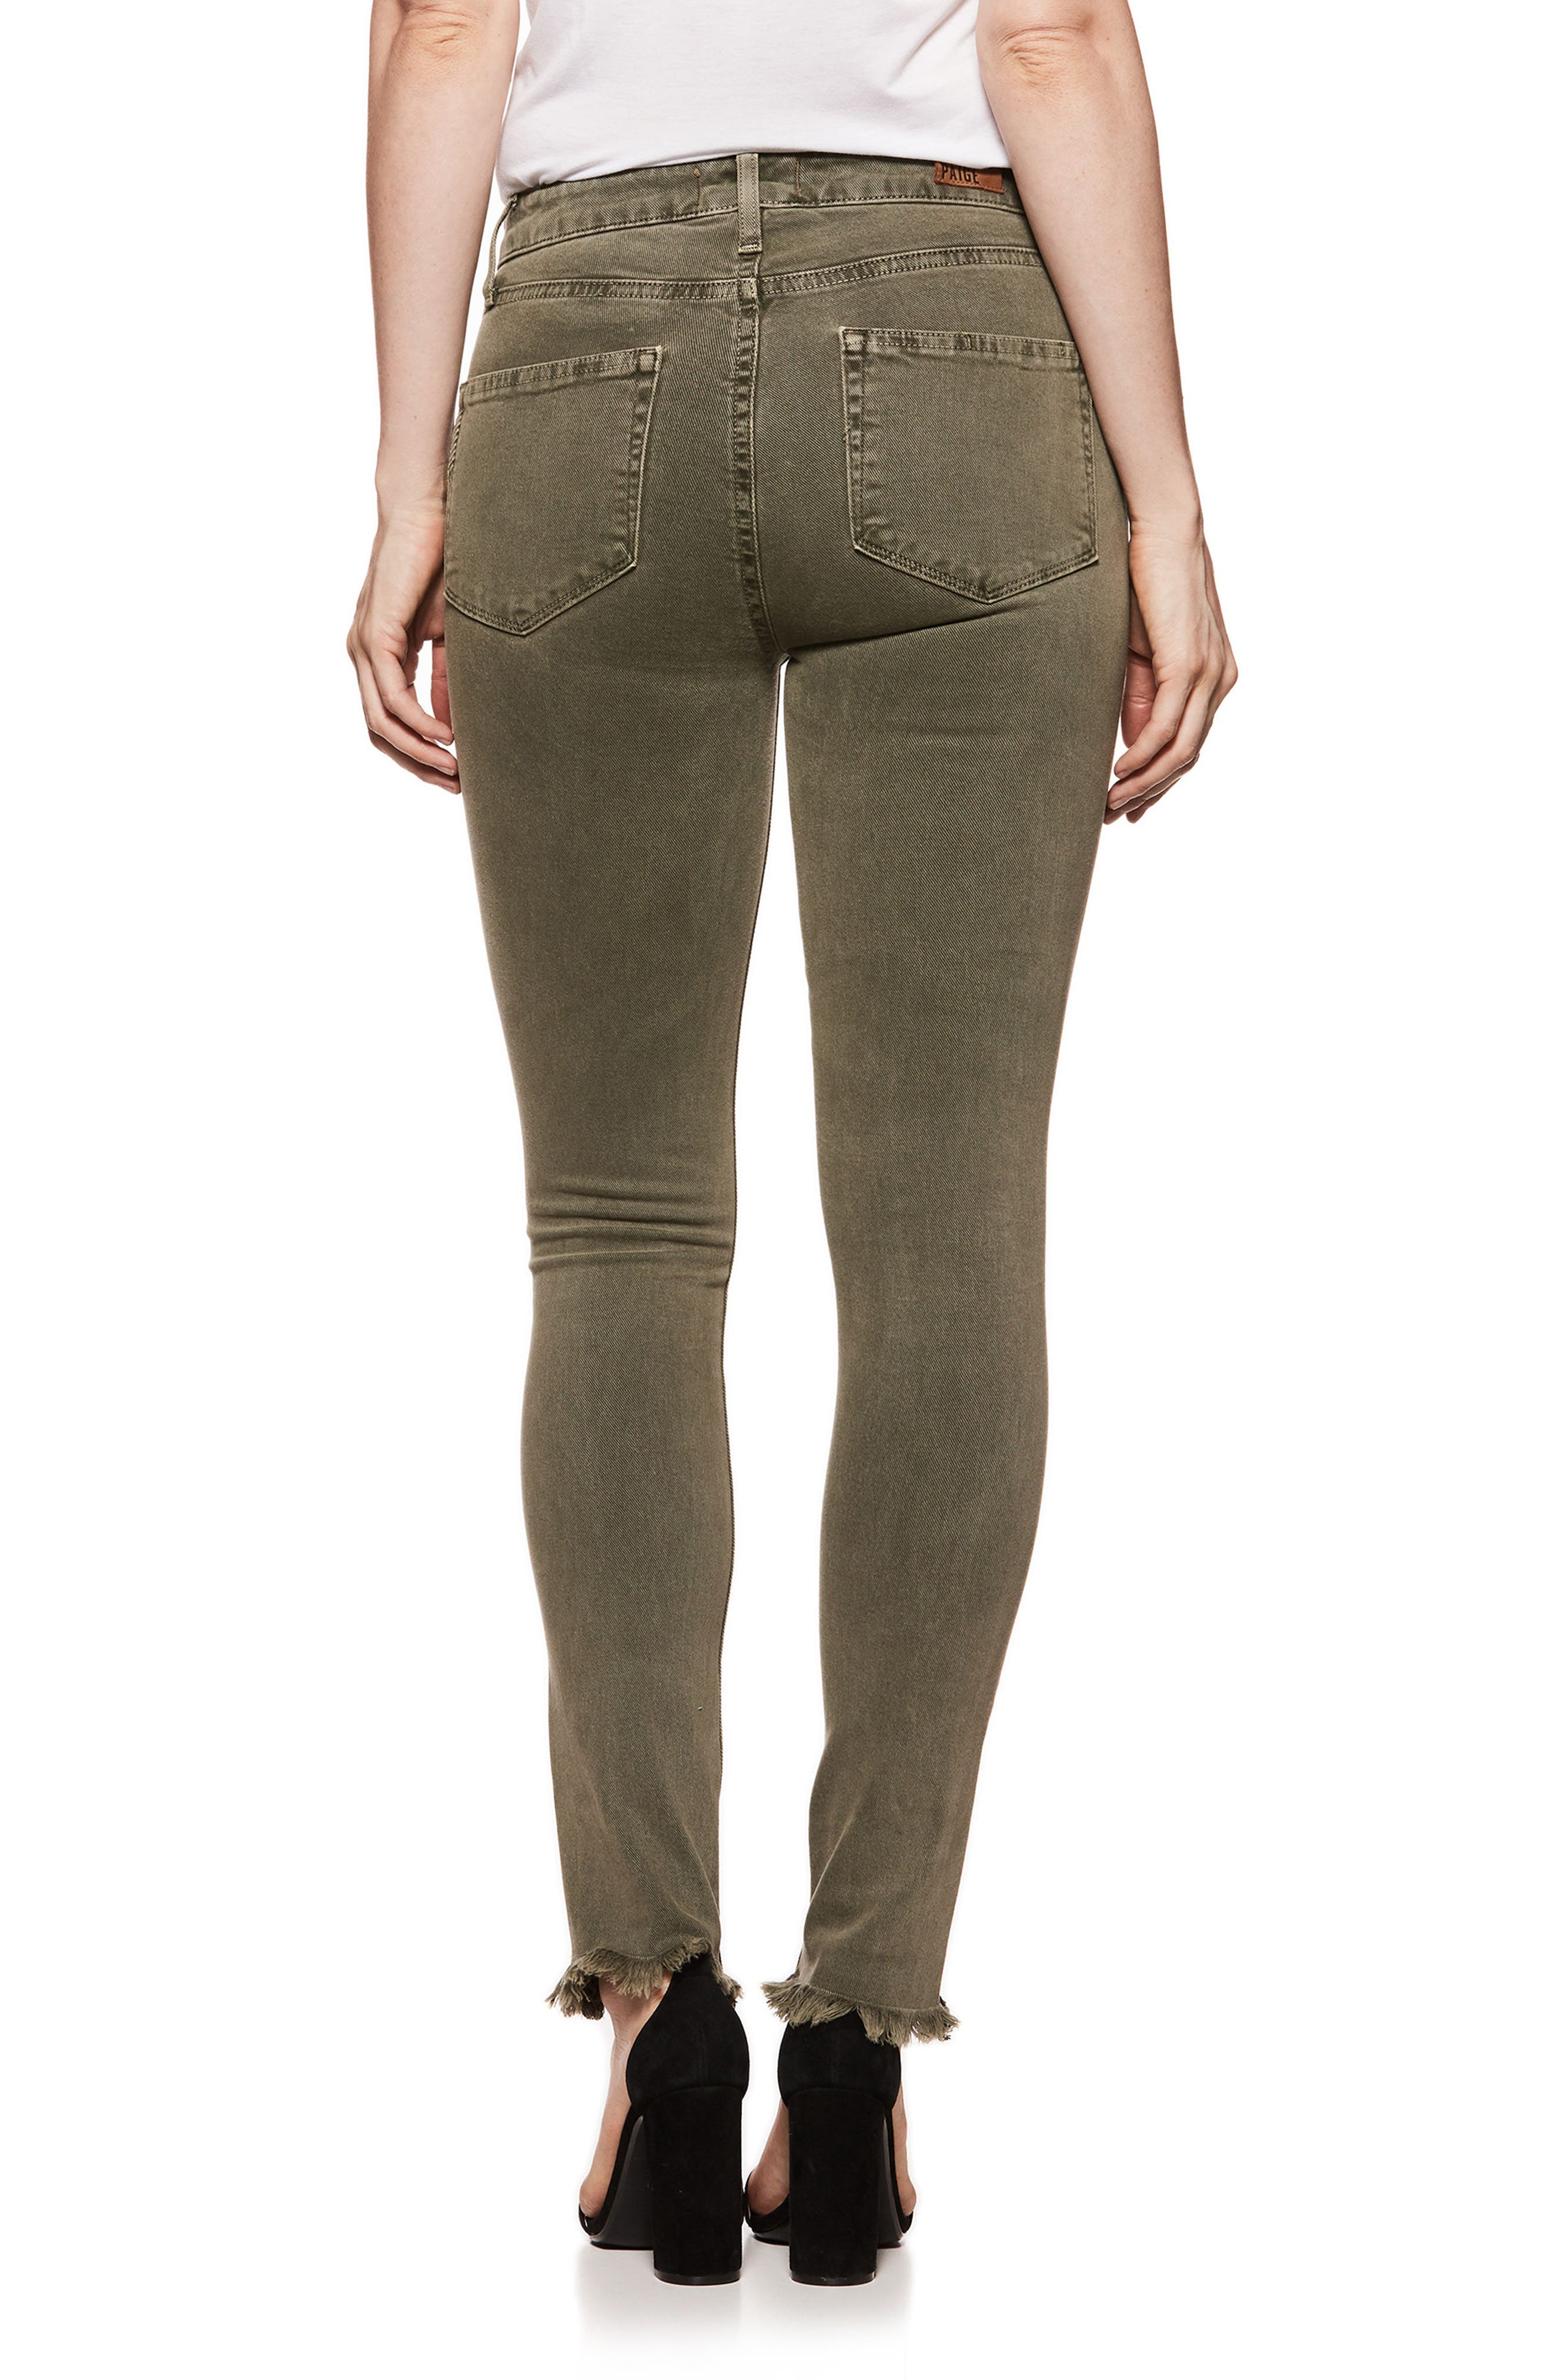 Hoxton High Waist Ankle Skinny Jeans,                             Alternate thumbnail 3, color,                             Vintage Green